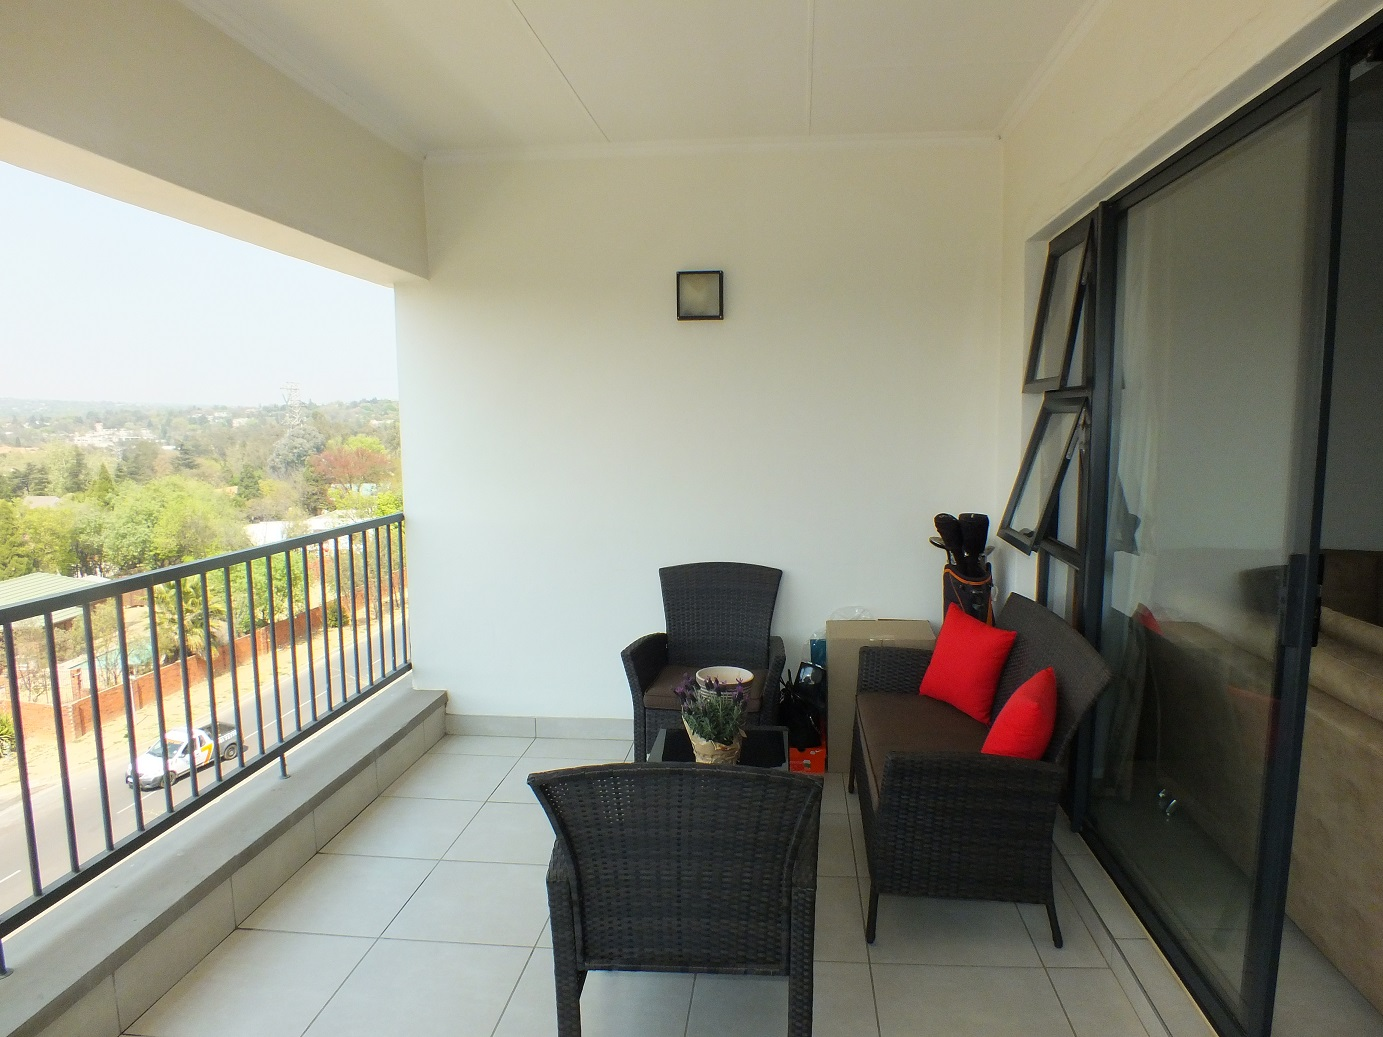 1 Bedroom Apartment for sale in Bryanston ENT0067747 : photo#6